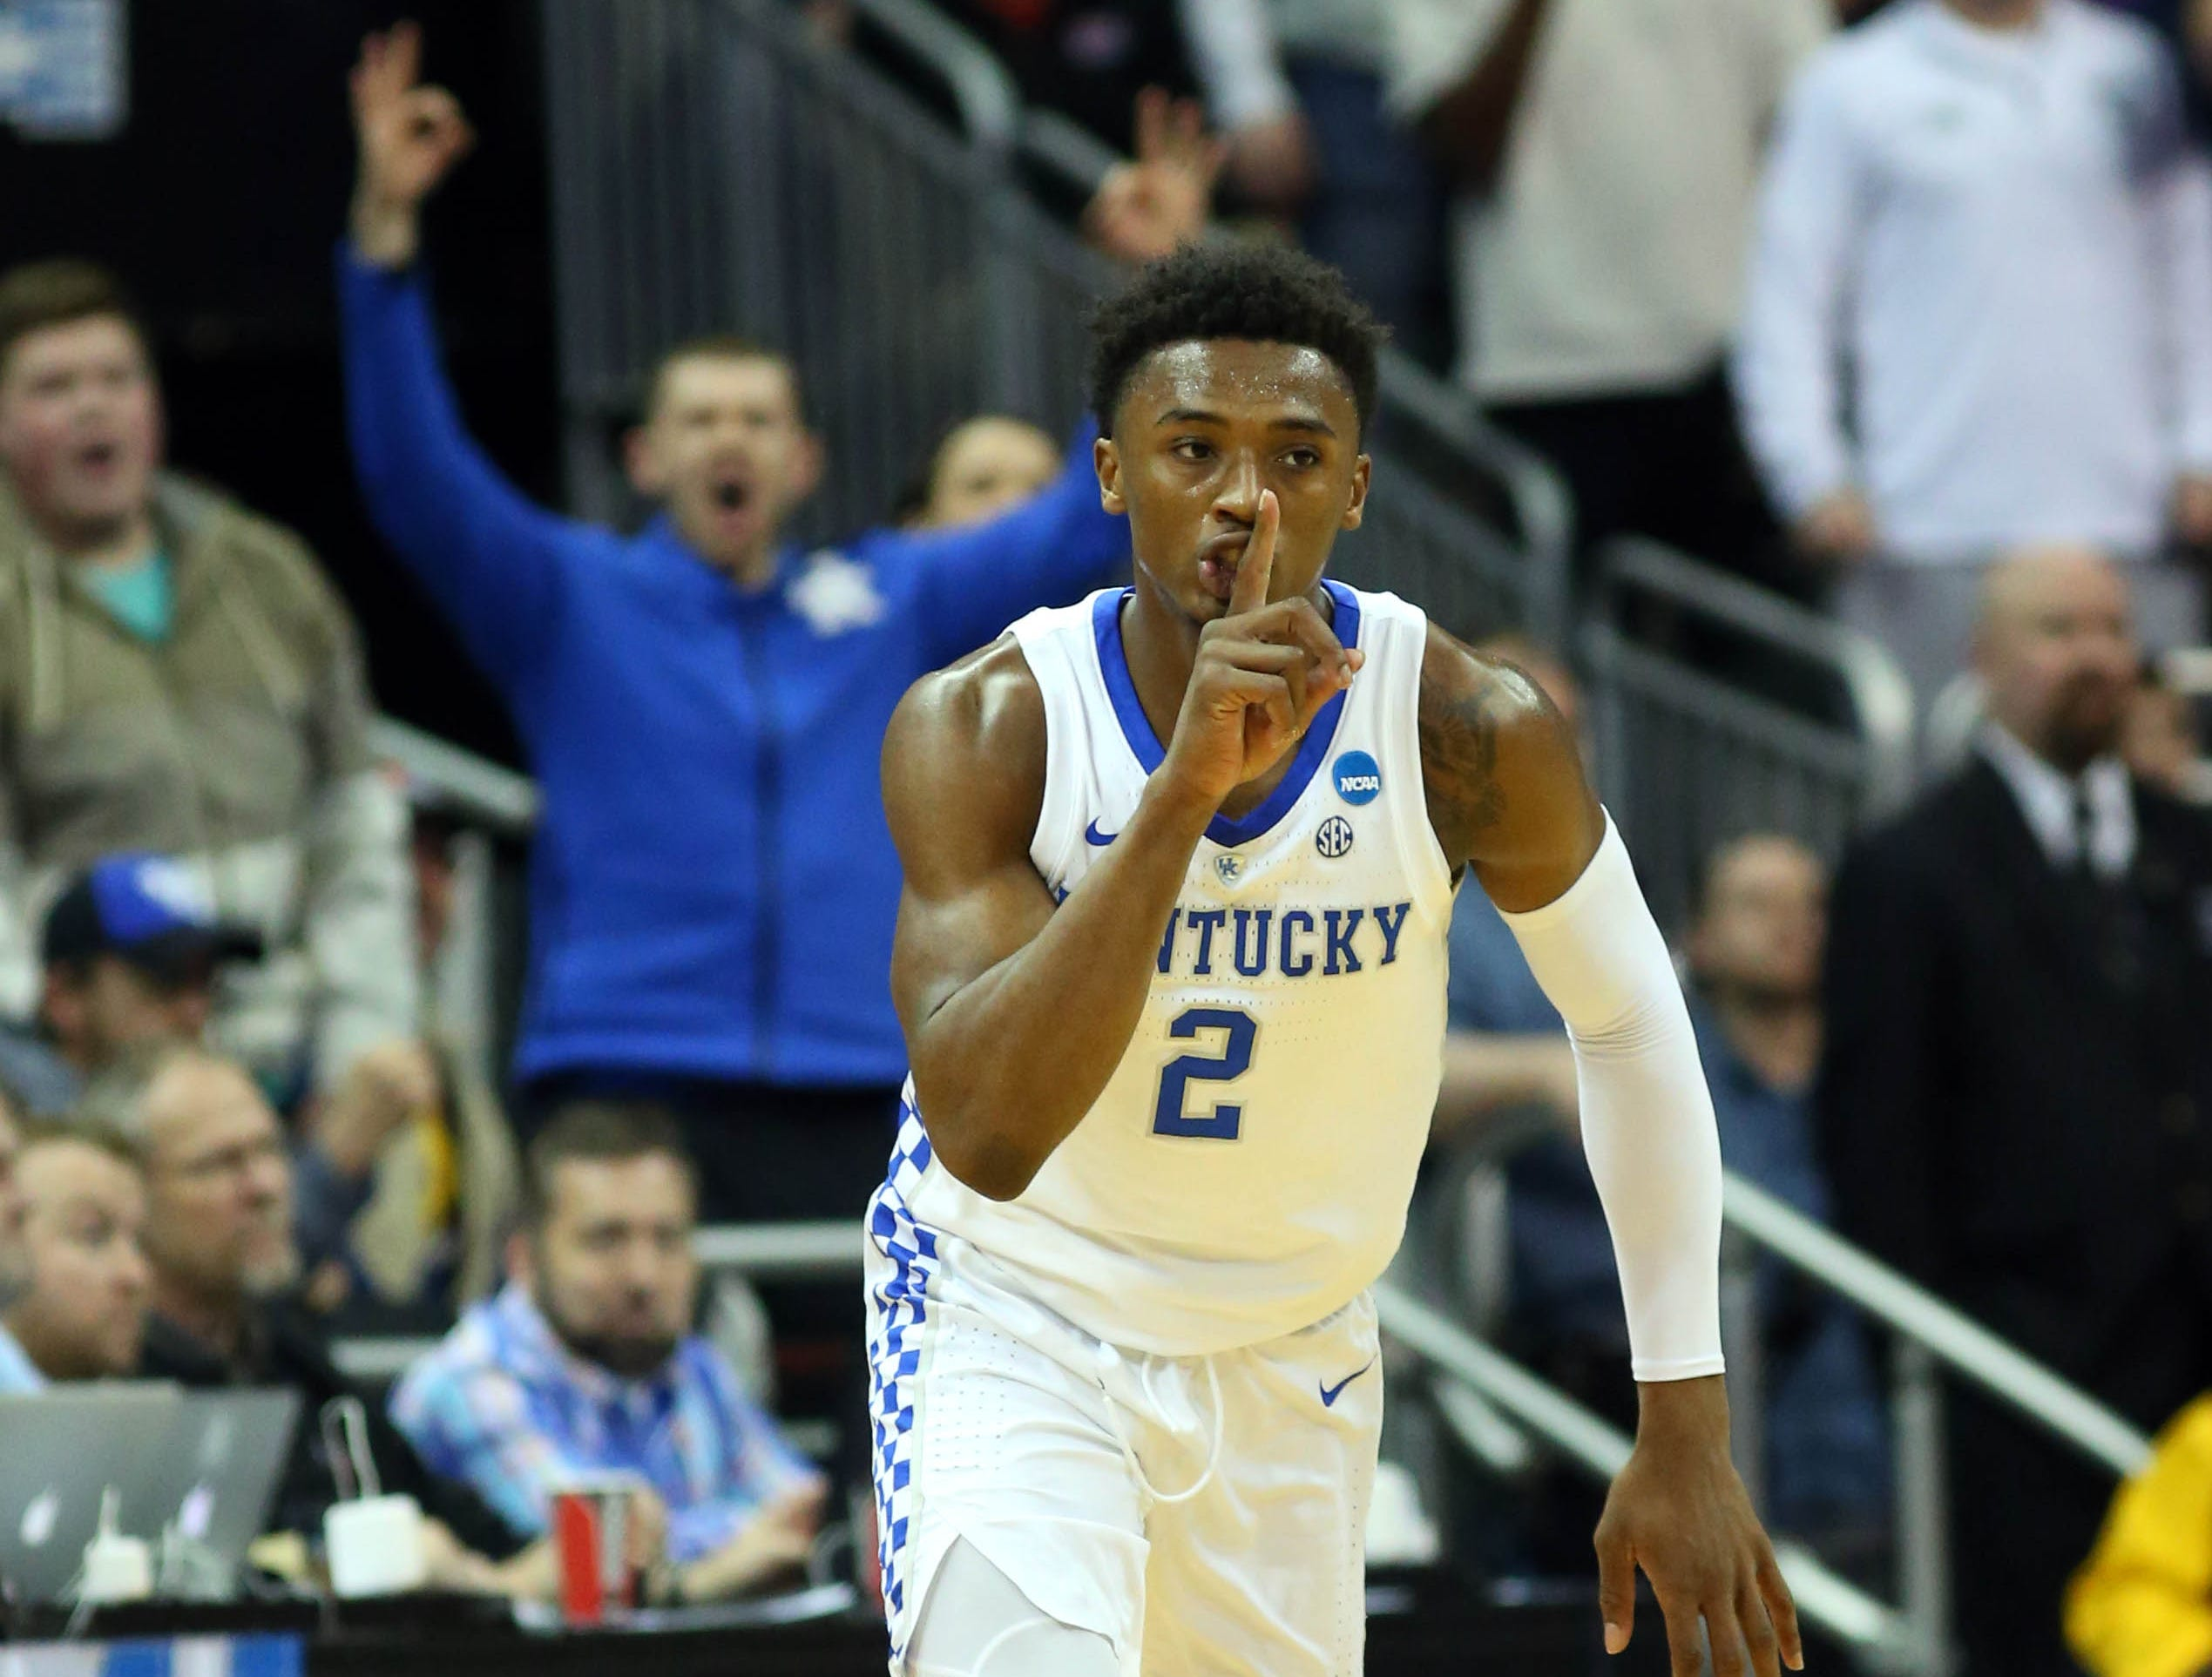 Mar 31, 2019; Kansas City, MO, United States; Kentucky Wildcats guard Ashton Hagans (2) reacts after a three point basket against the Auburn Tigers during the first half in the championship game of the midwest regional of the 2019 NCAA Tournament at Sprint Center. Mandatory Credit: Jay Biggerstaff-USA TODAY Sports